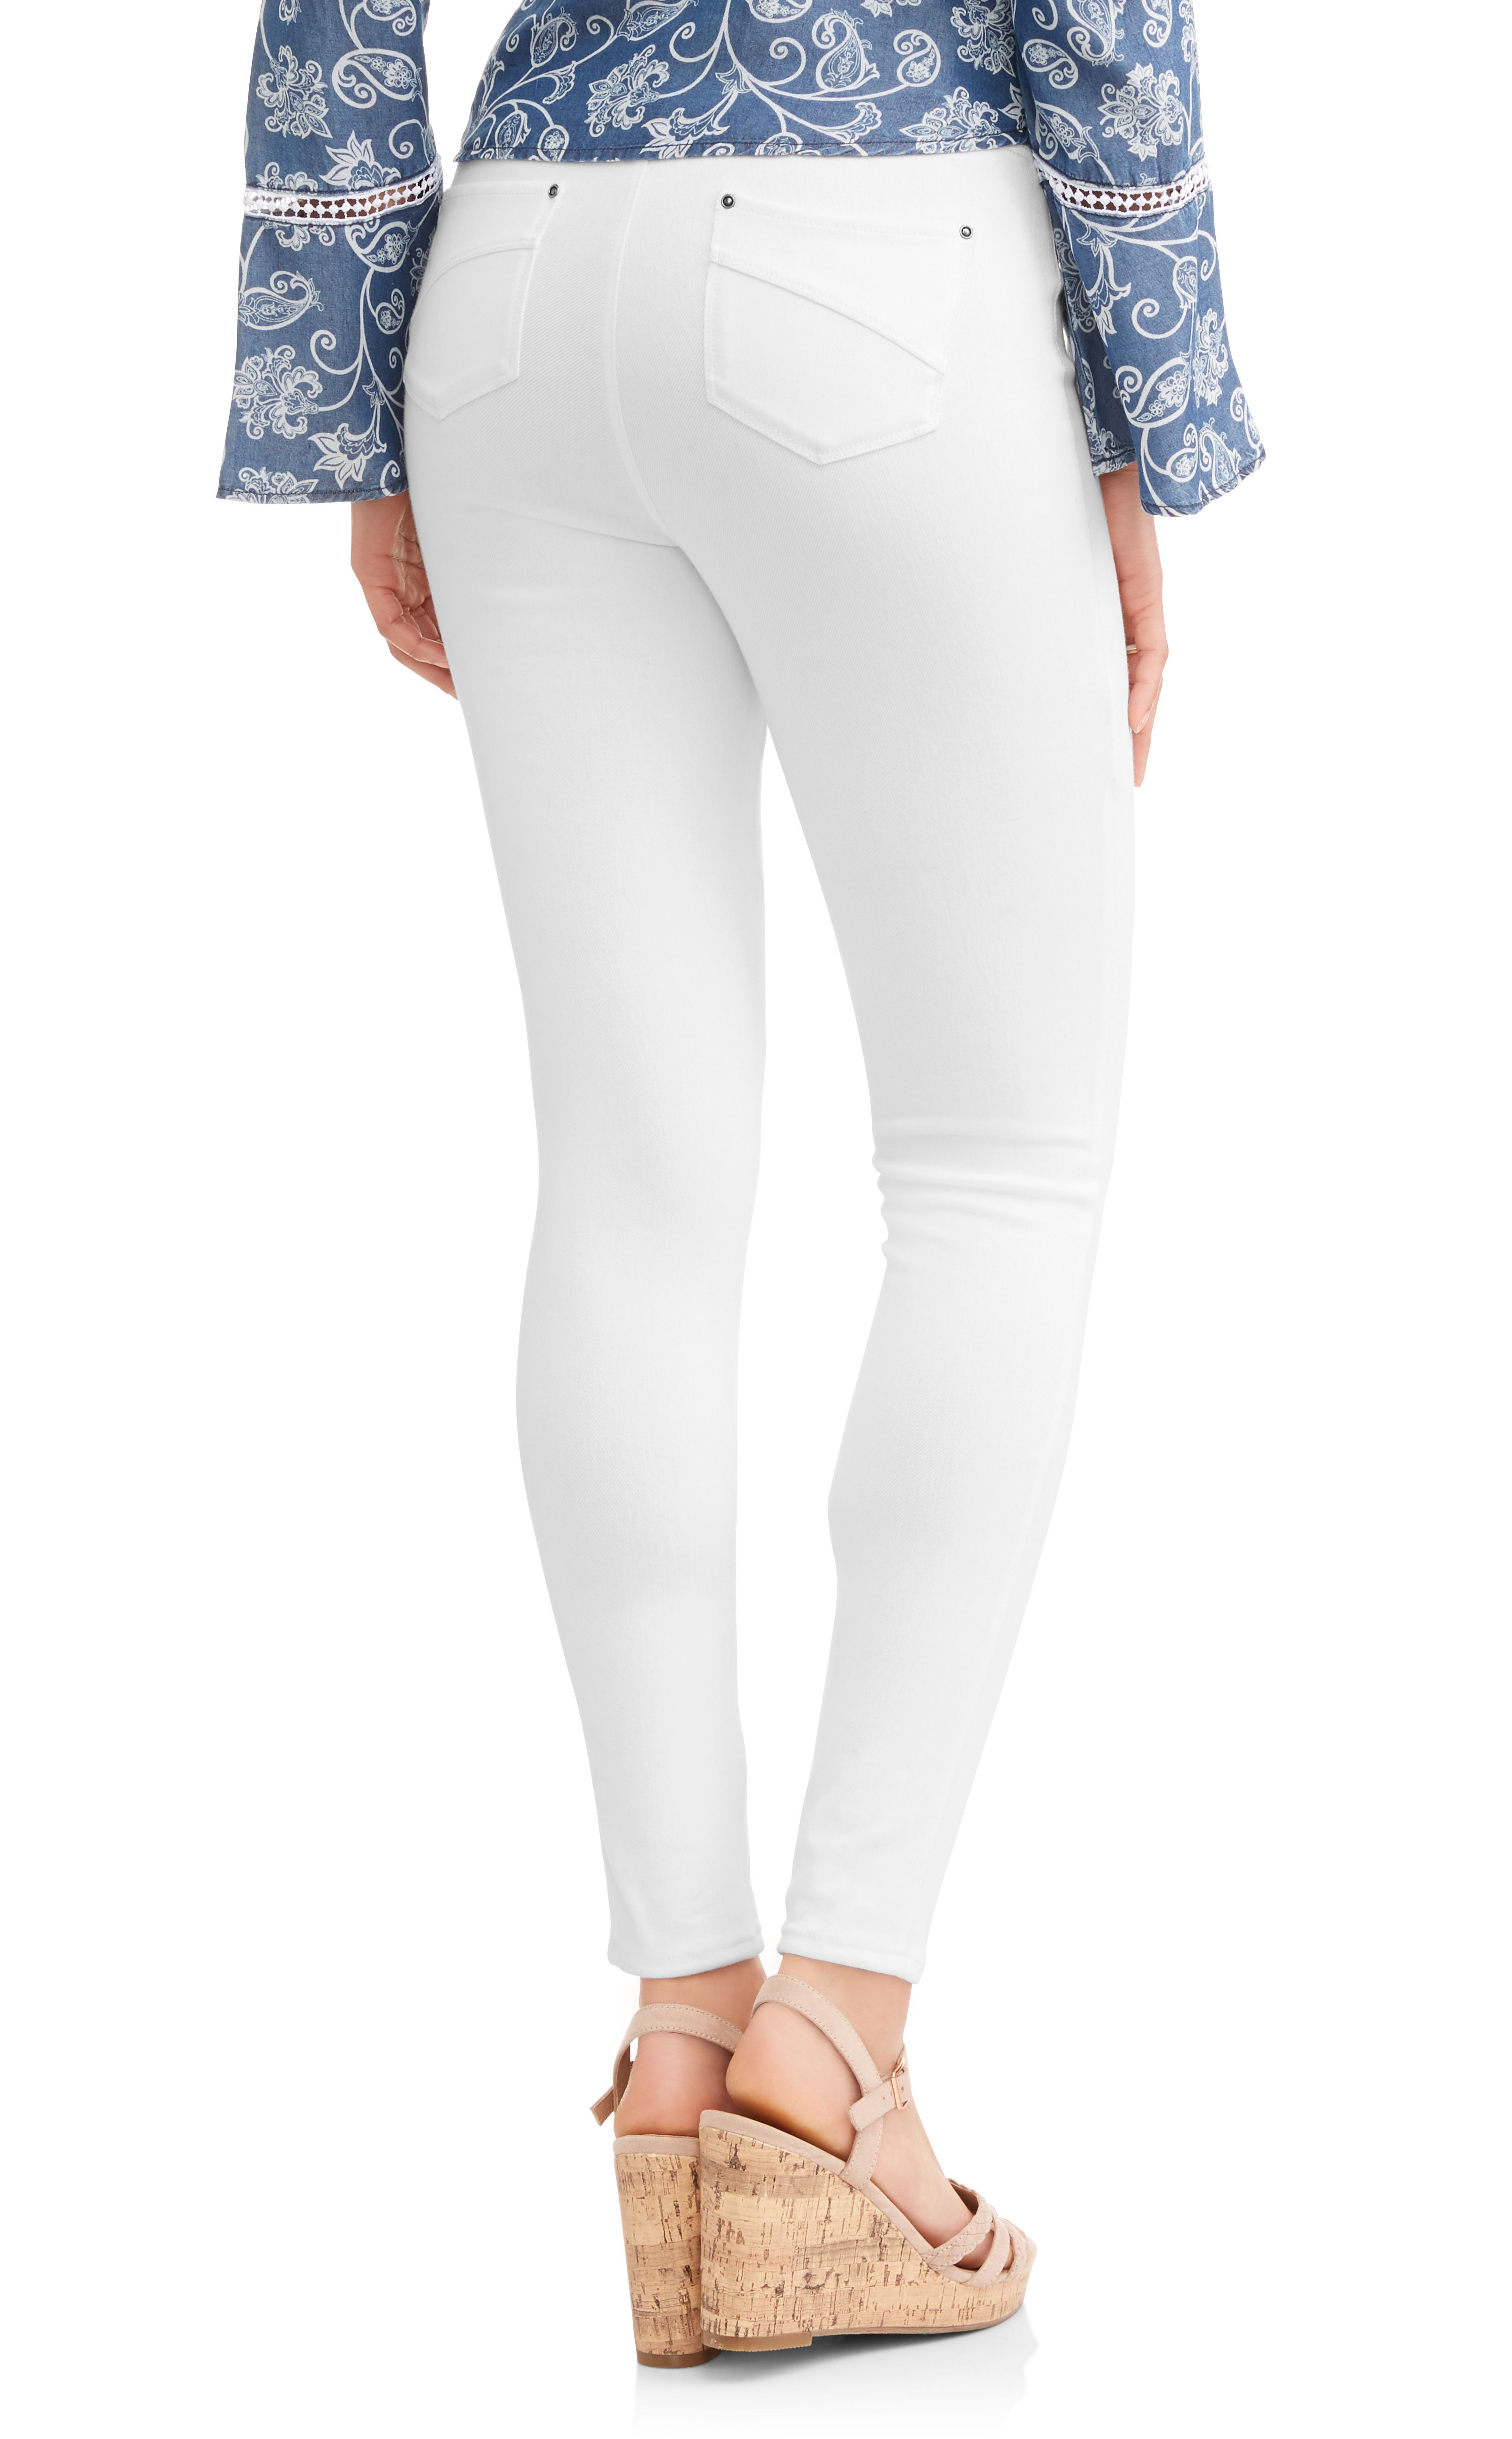 c765b88ce1ad89 Time and Tru Women's Full Length Soft Knit Color Jegging#Women, #Full, #Time